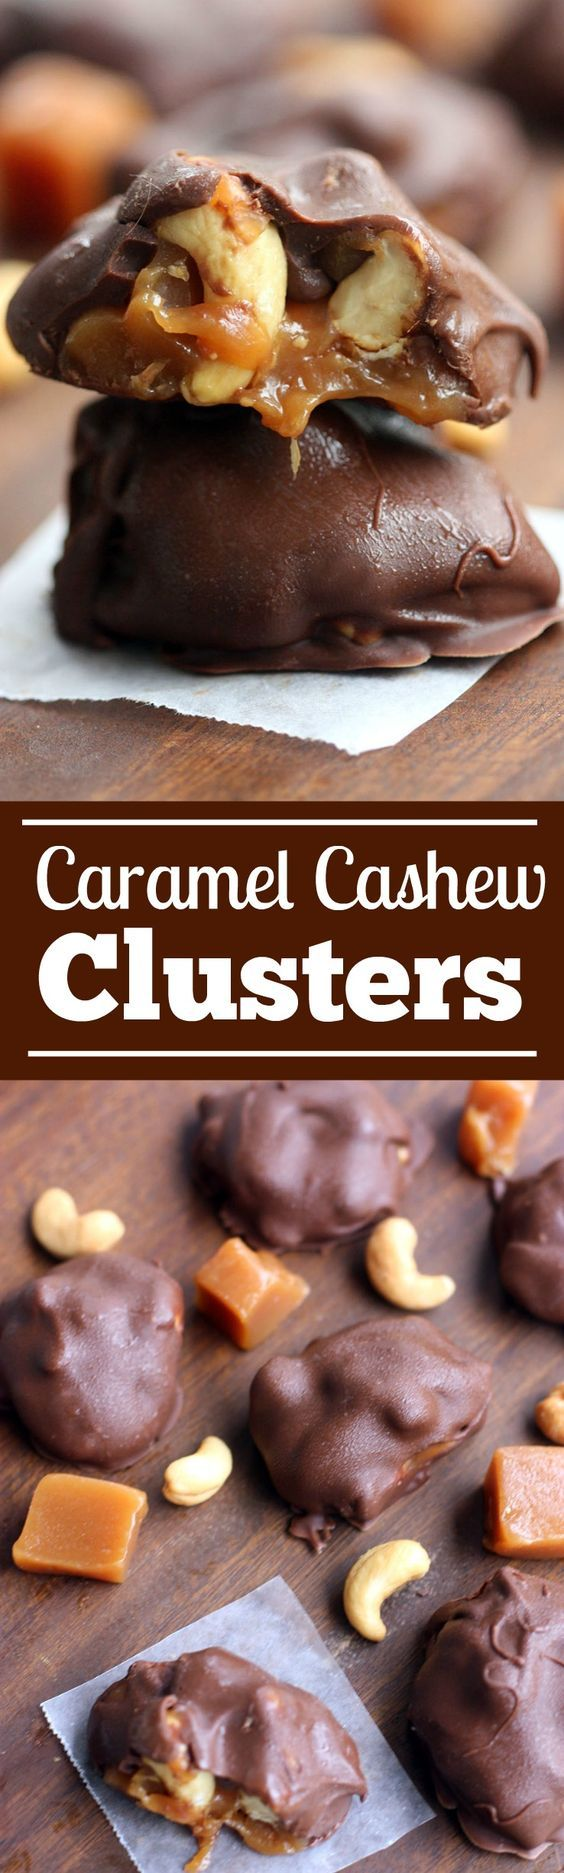 Caramel Cashew Clusters are the perfect easy treat! A no-bake candy that's only 3-ingredients.